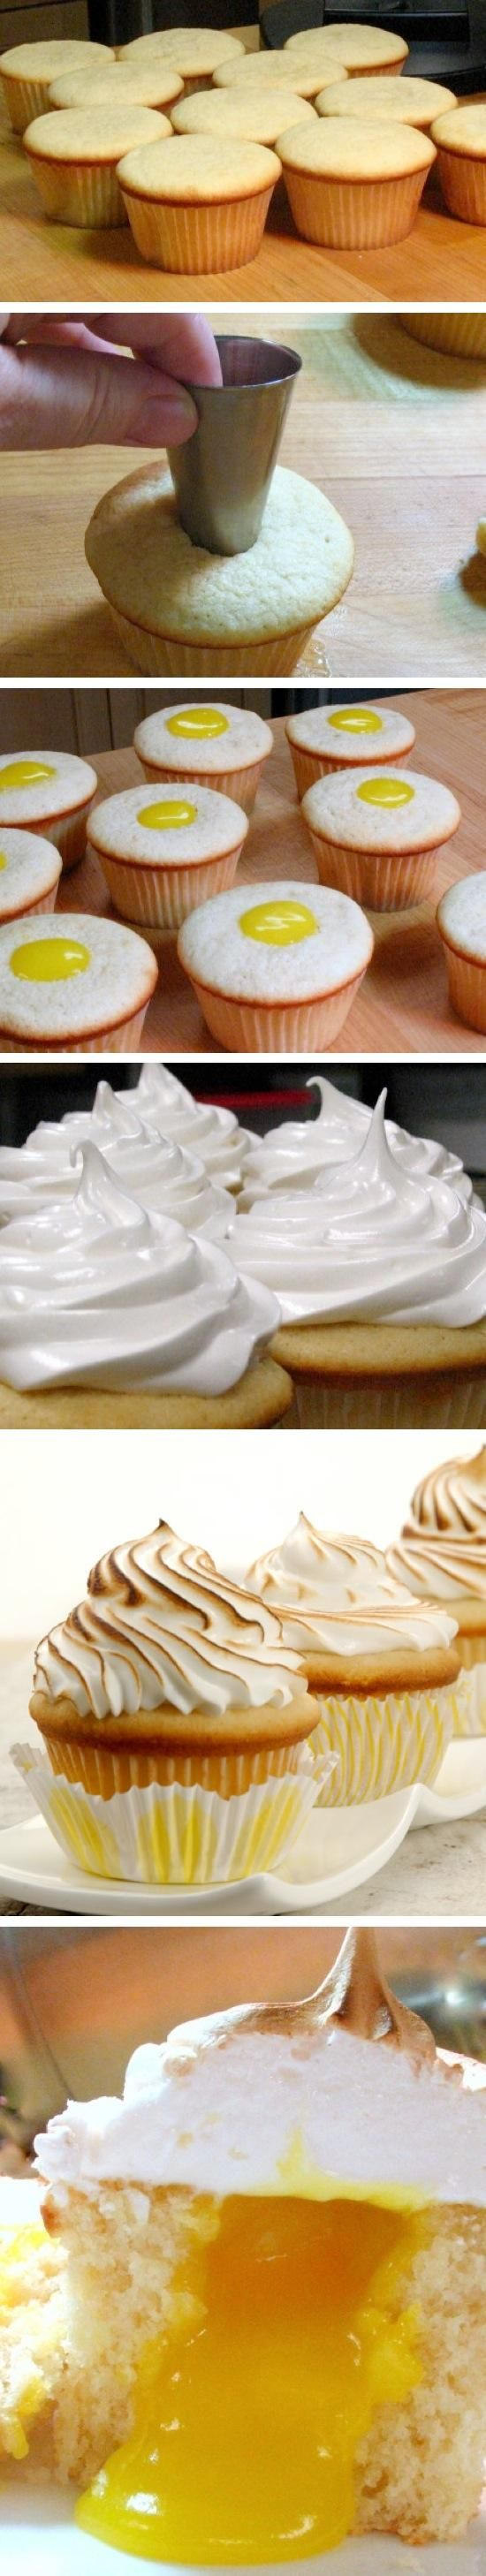 Lemon Meringue Cupcakes I know what I want for my birthday!